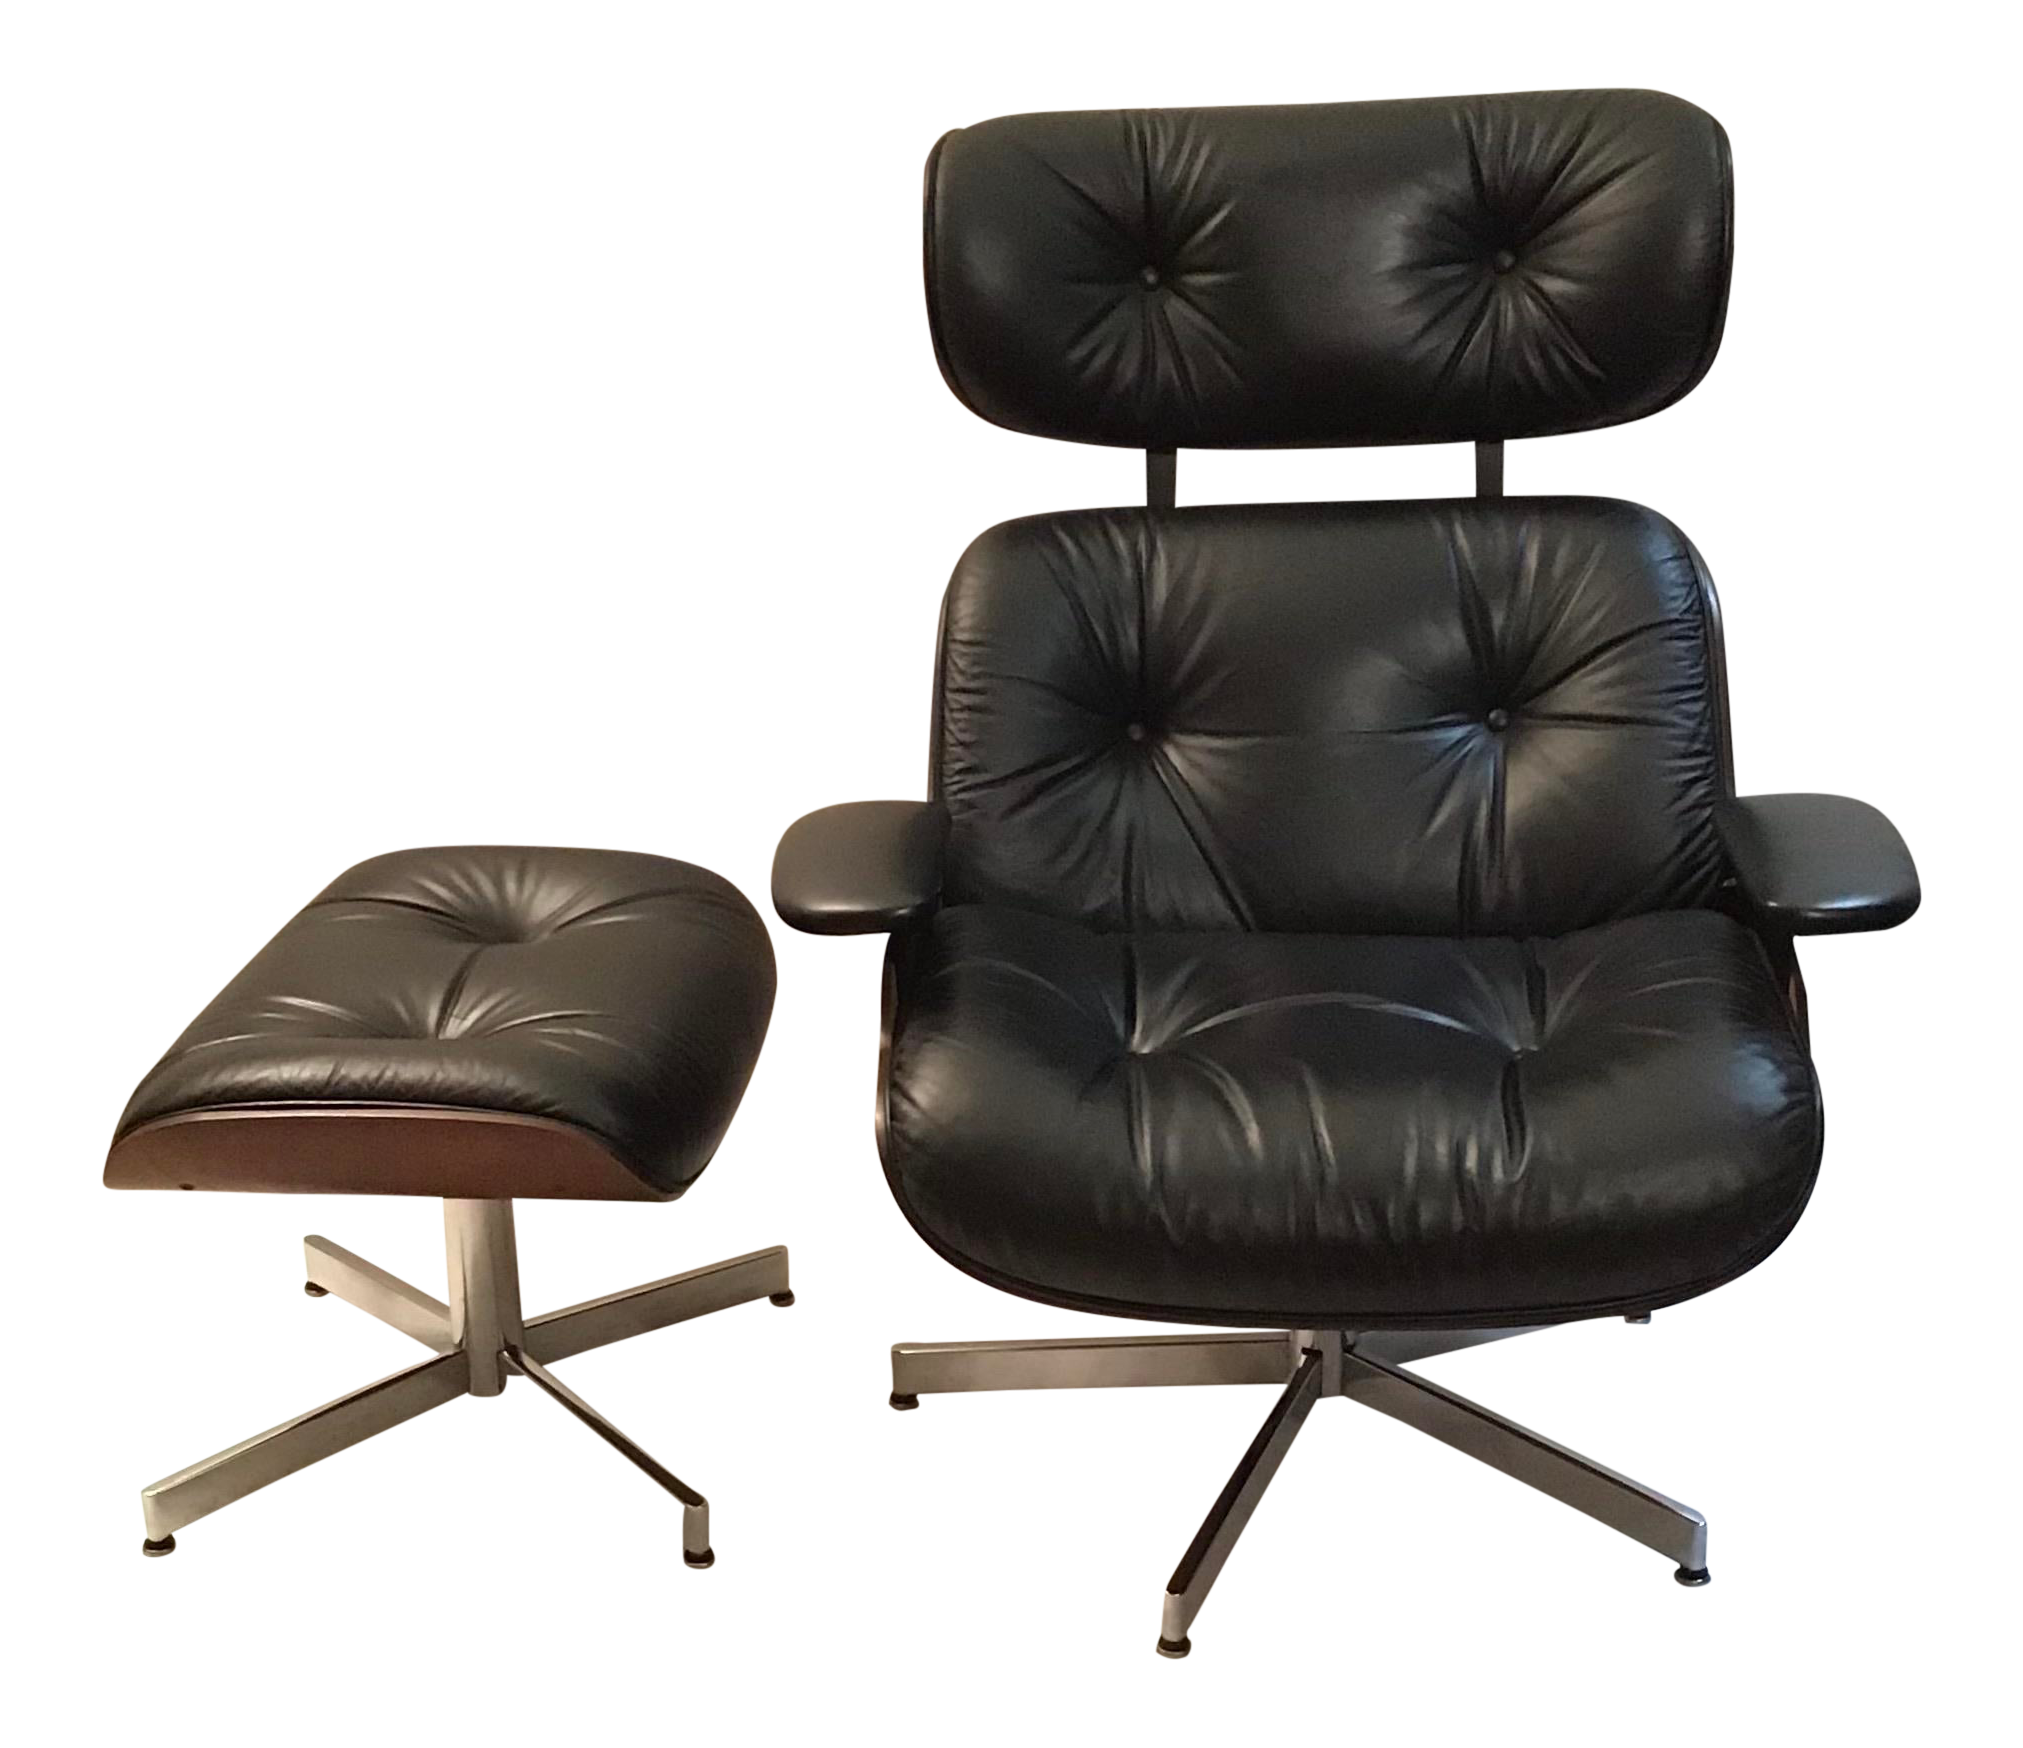 Surprising Gently Used Eames Furniture Up To 60 Off At Chairish Ncnpc Chair Design For Home Ncnpcorg